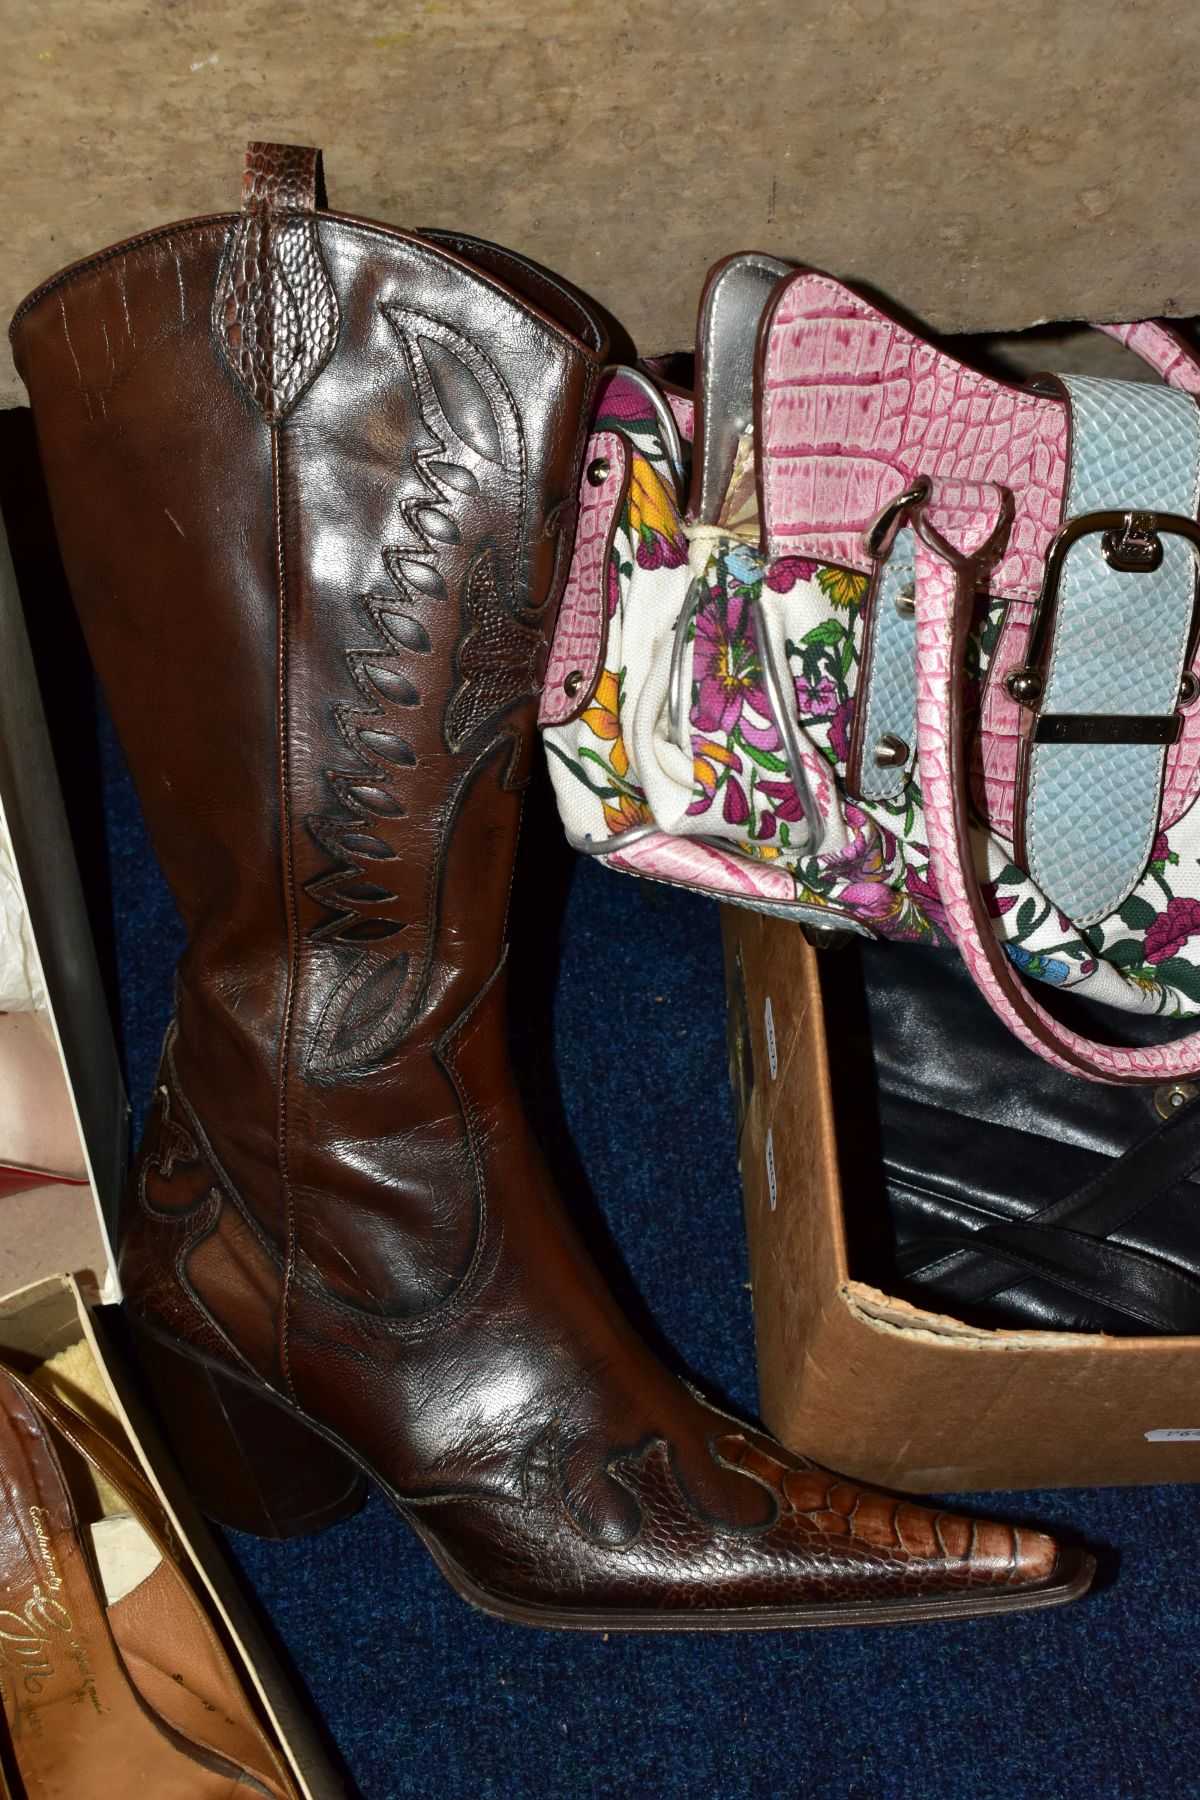 A QUANTITY OF LADIES SHOES AND HANDBAGS, EVENING BAGS, BOXED AND LOOSE, including a boxed pair of - Image 4 of 7